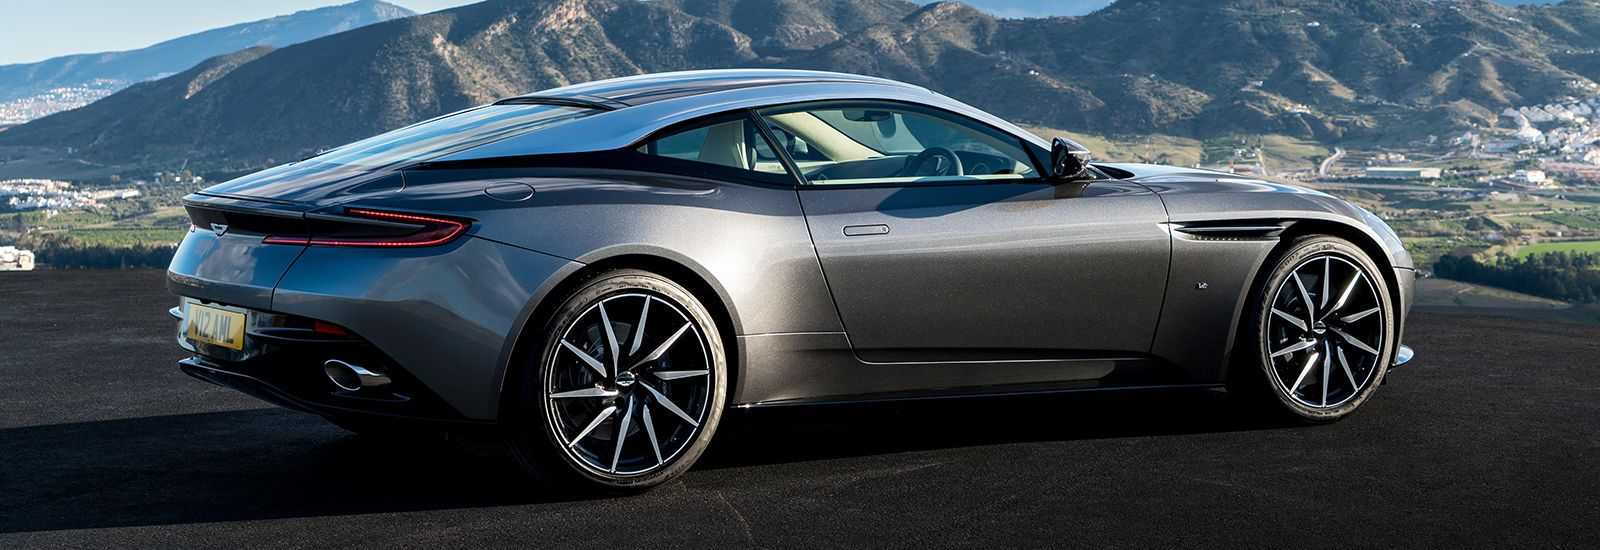 2016 aston martin db11 price specs & release date | carwow | cars